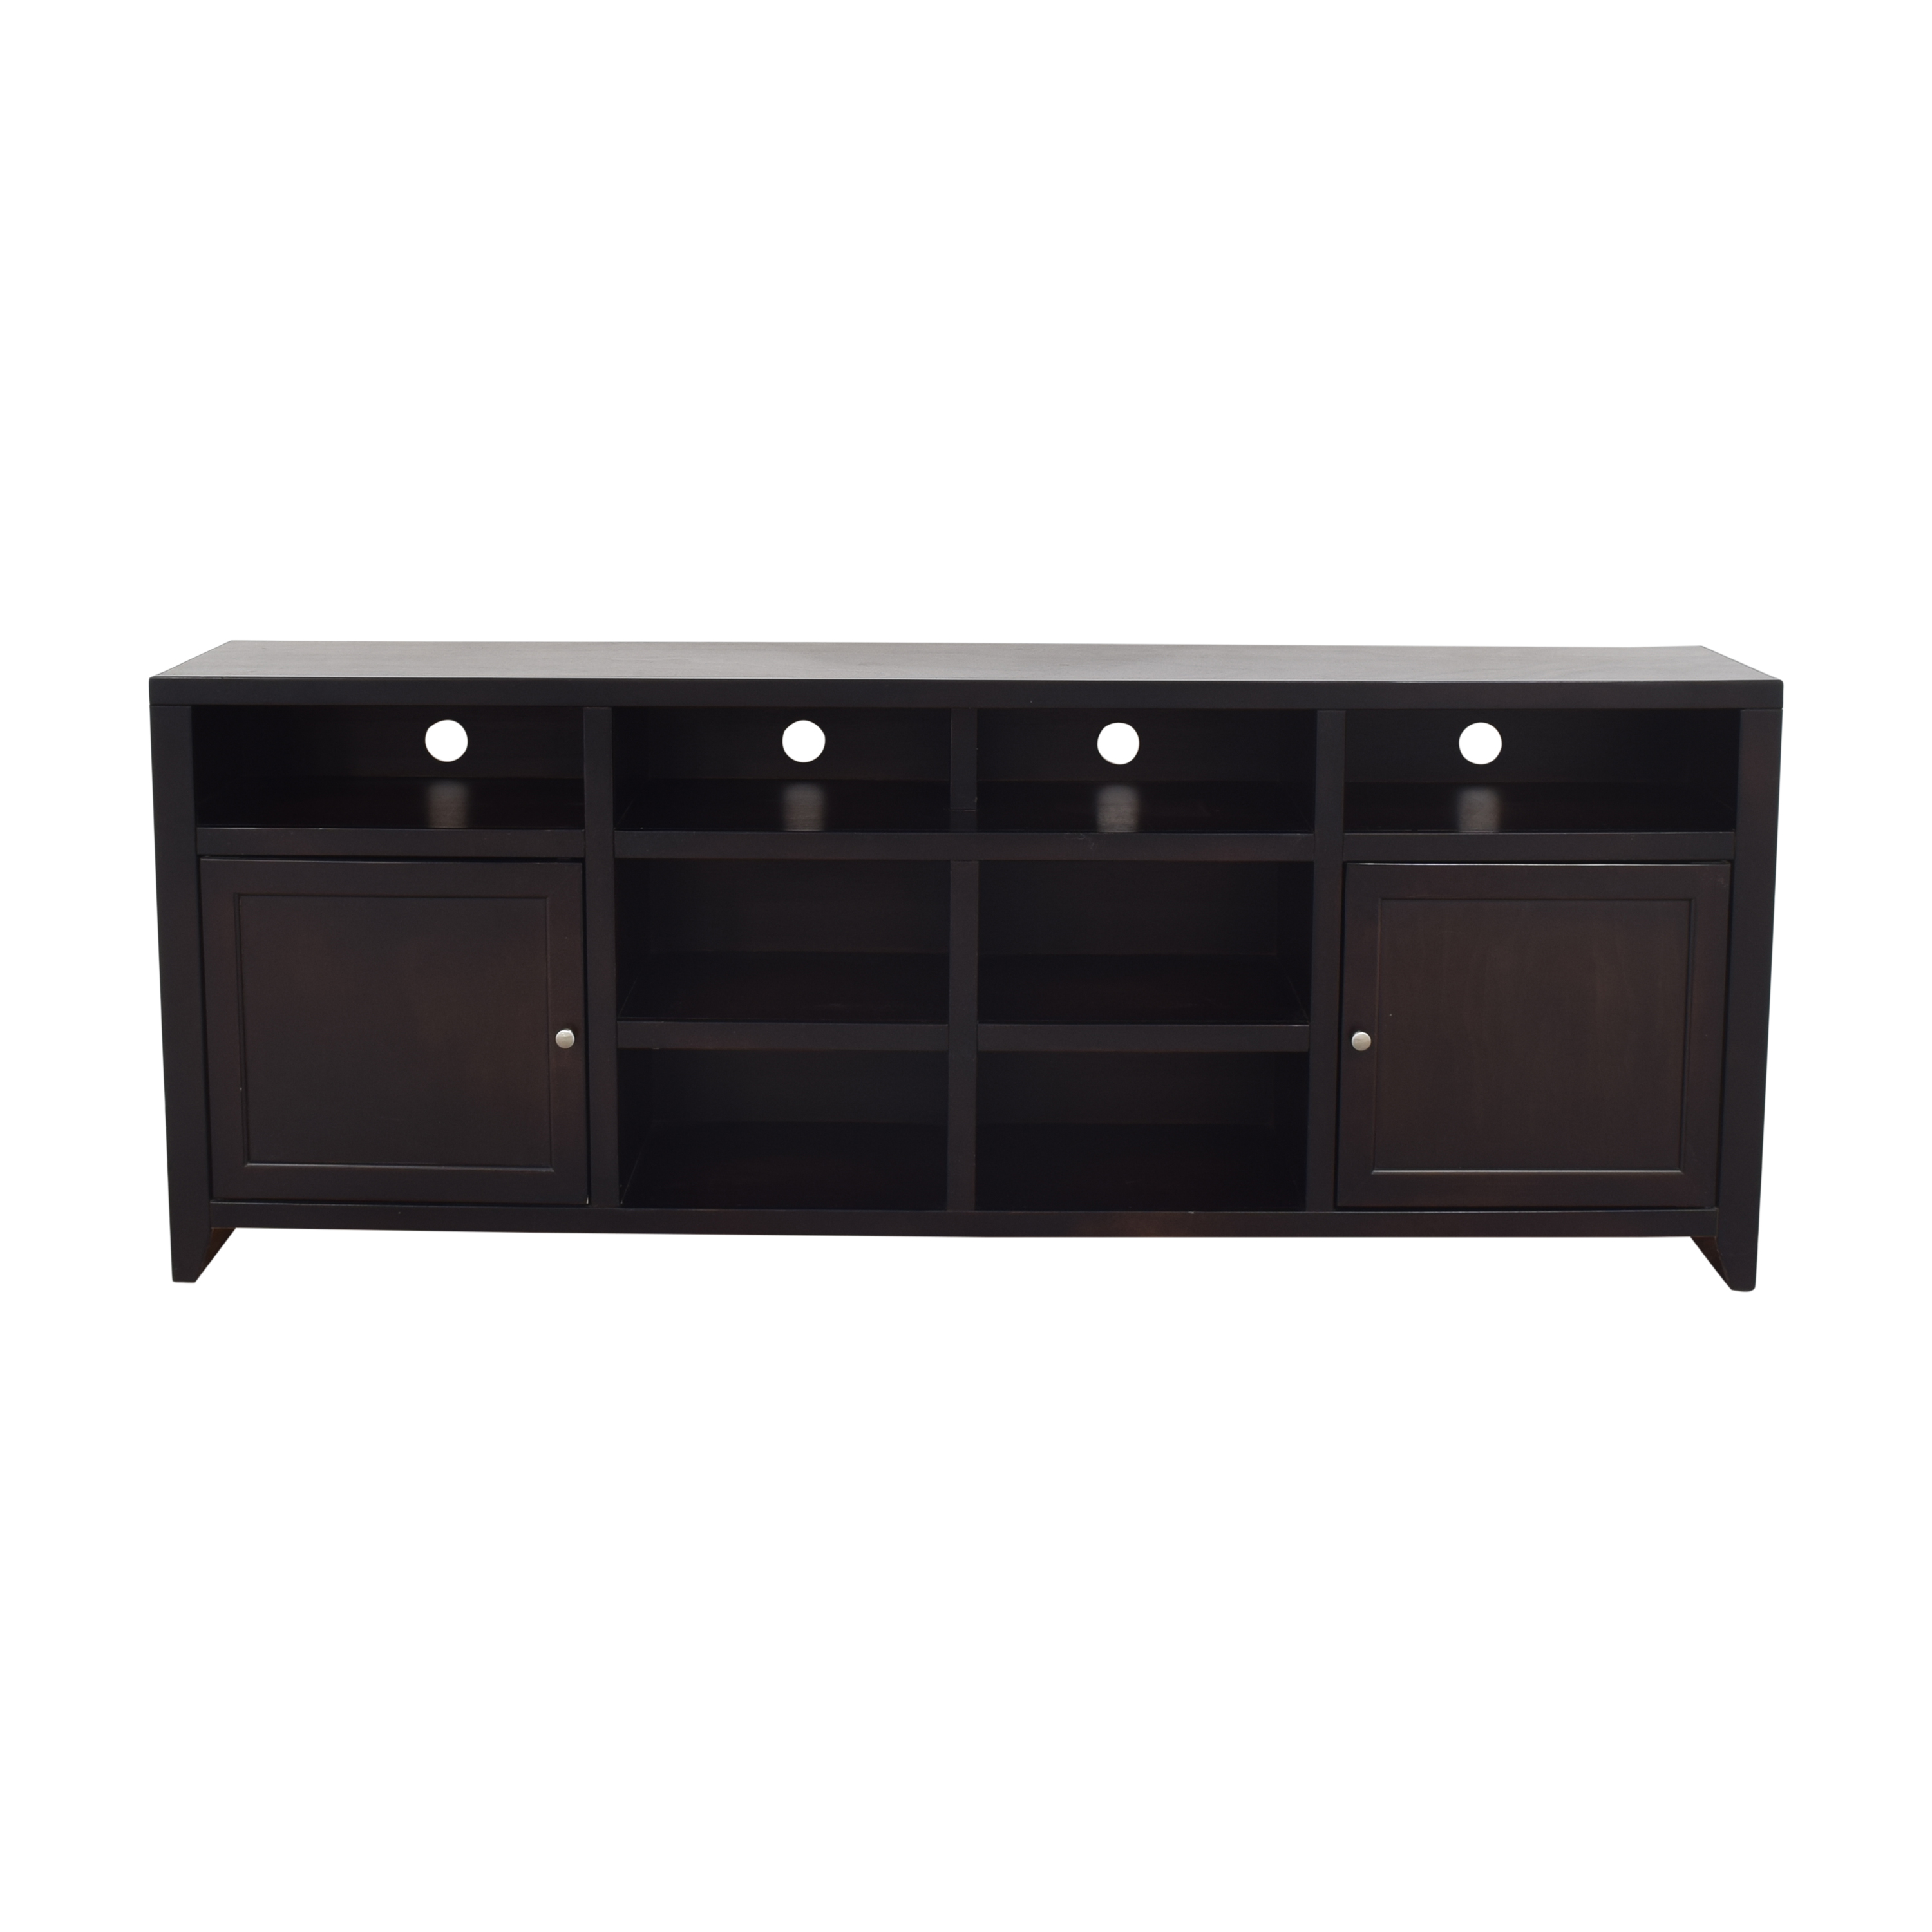 Legends Furniture Legends Furniture Urban Loft TV Console ct